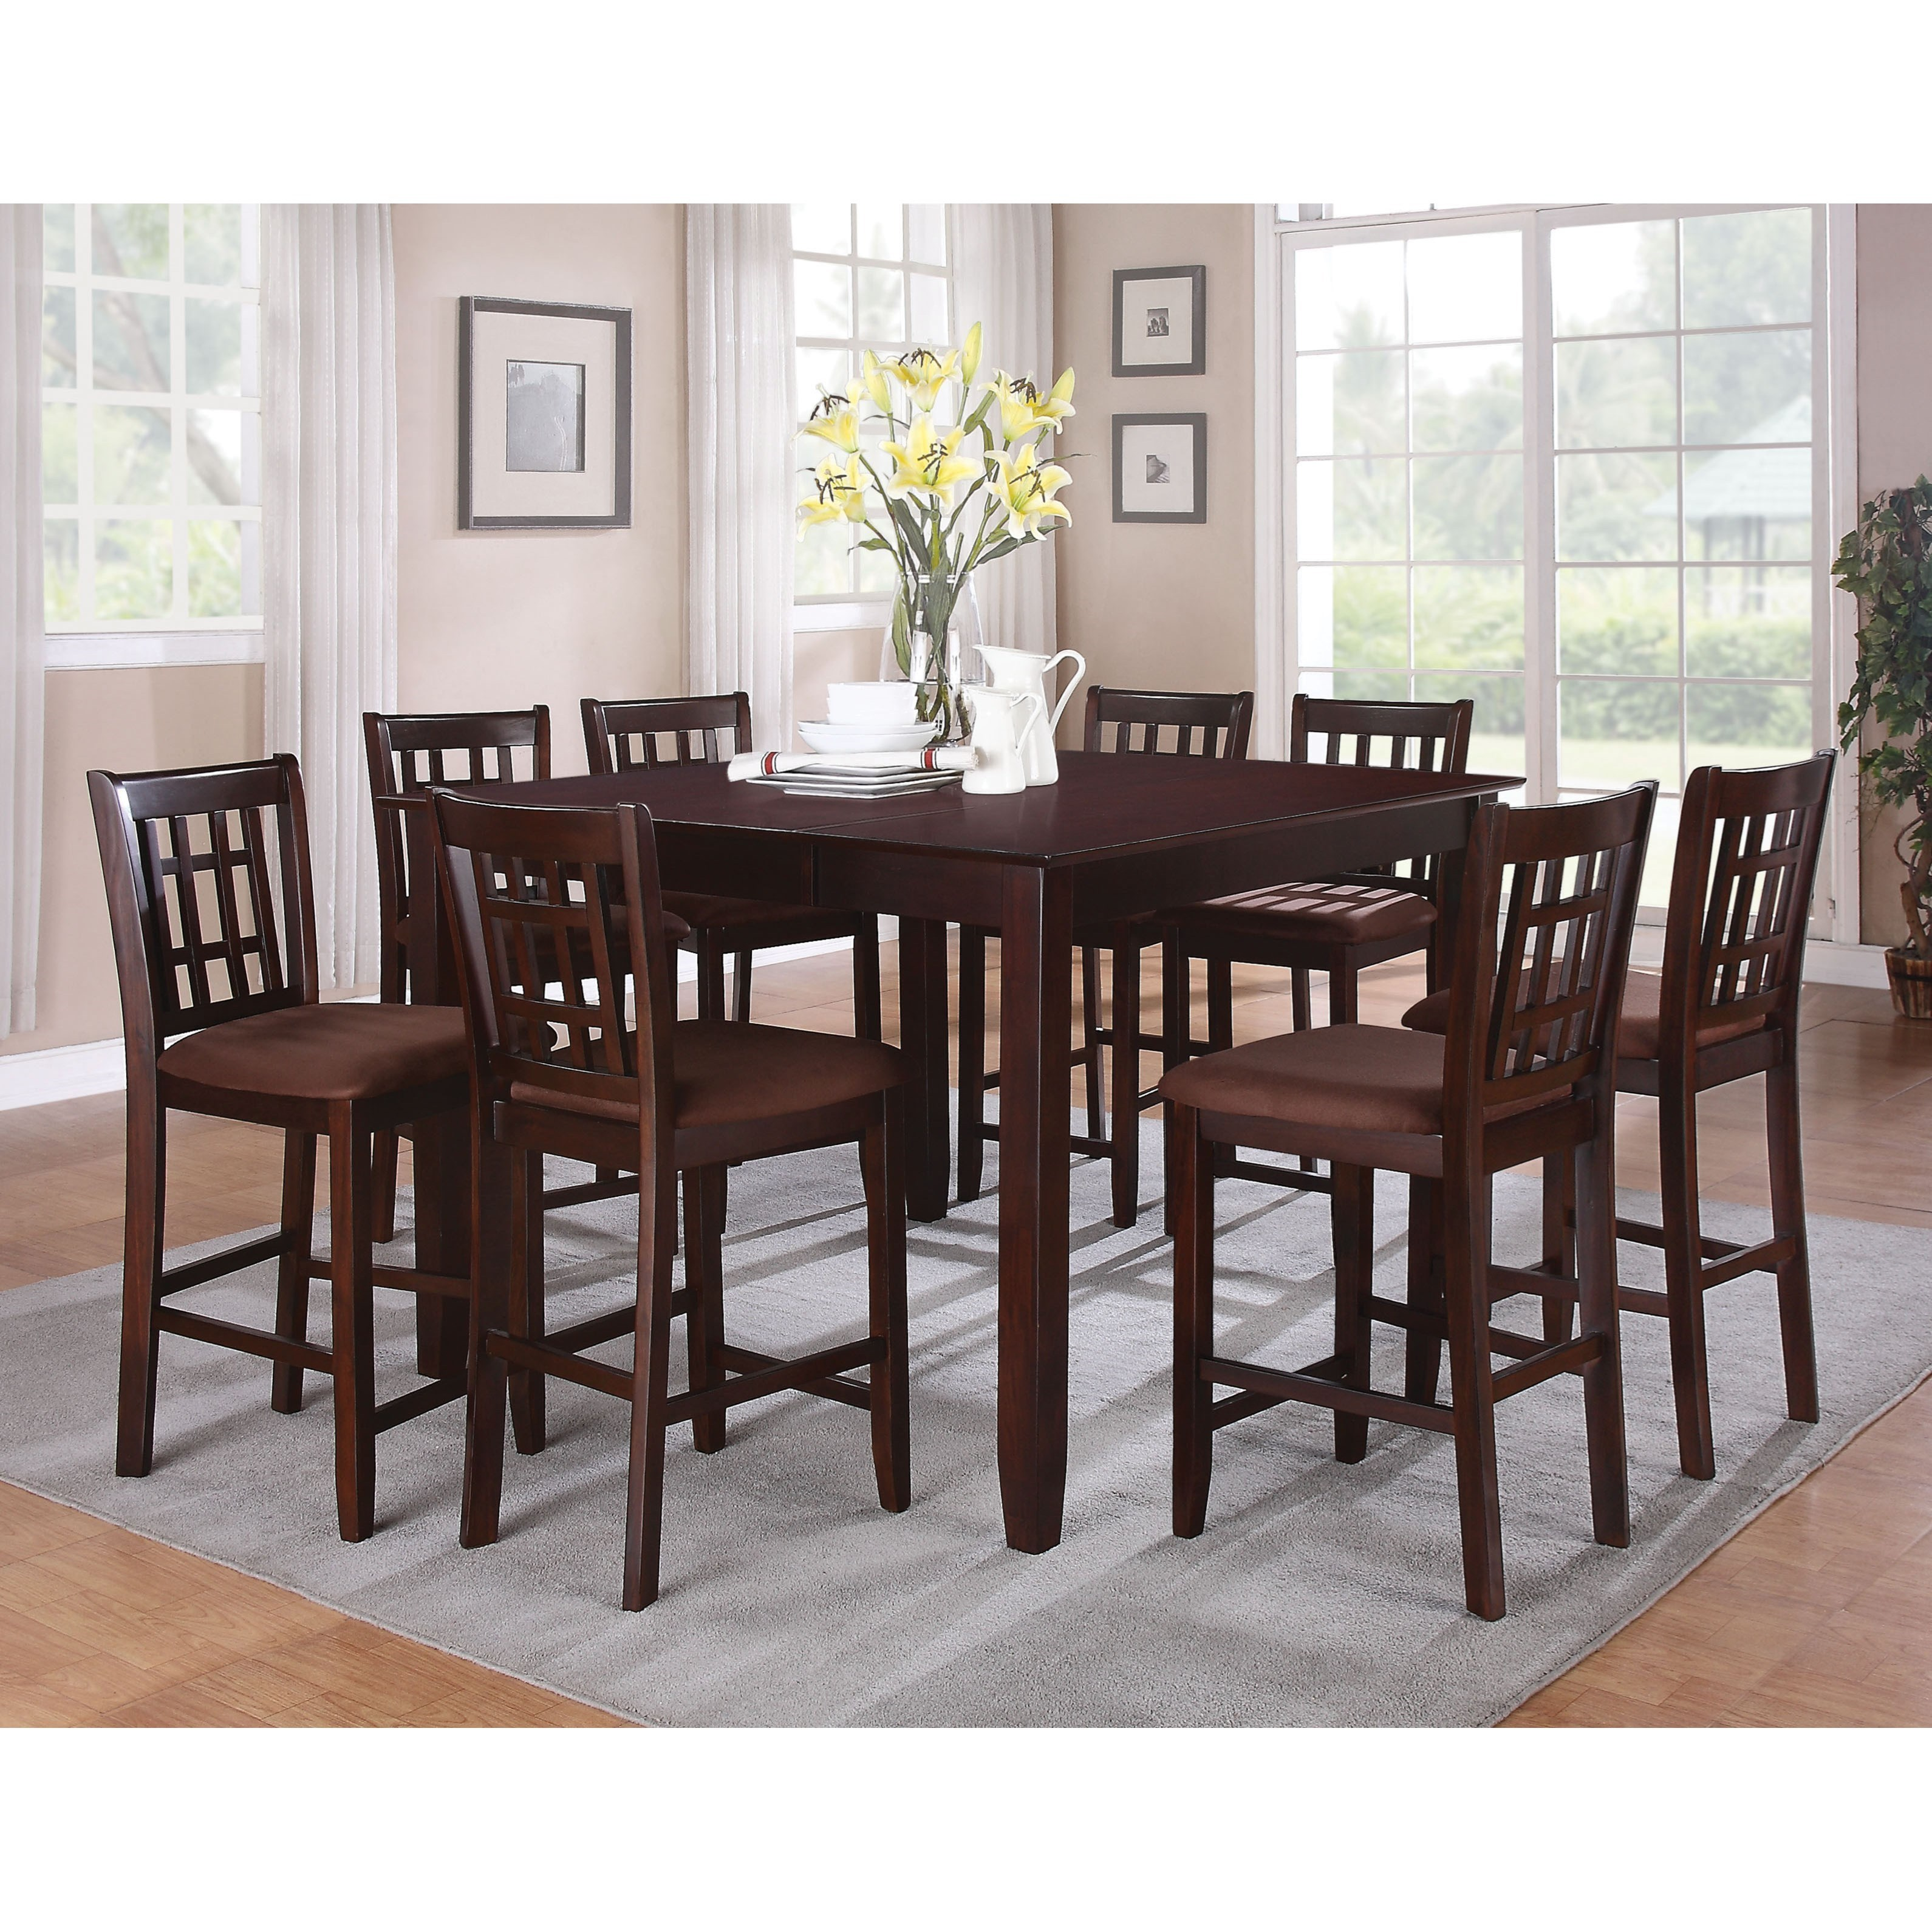 Adalia Counter Height Dining Set with 8 Chairs by Acme Furniture at A1 Furniture & Mattress